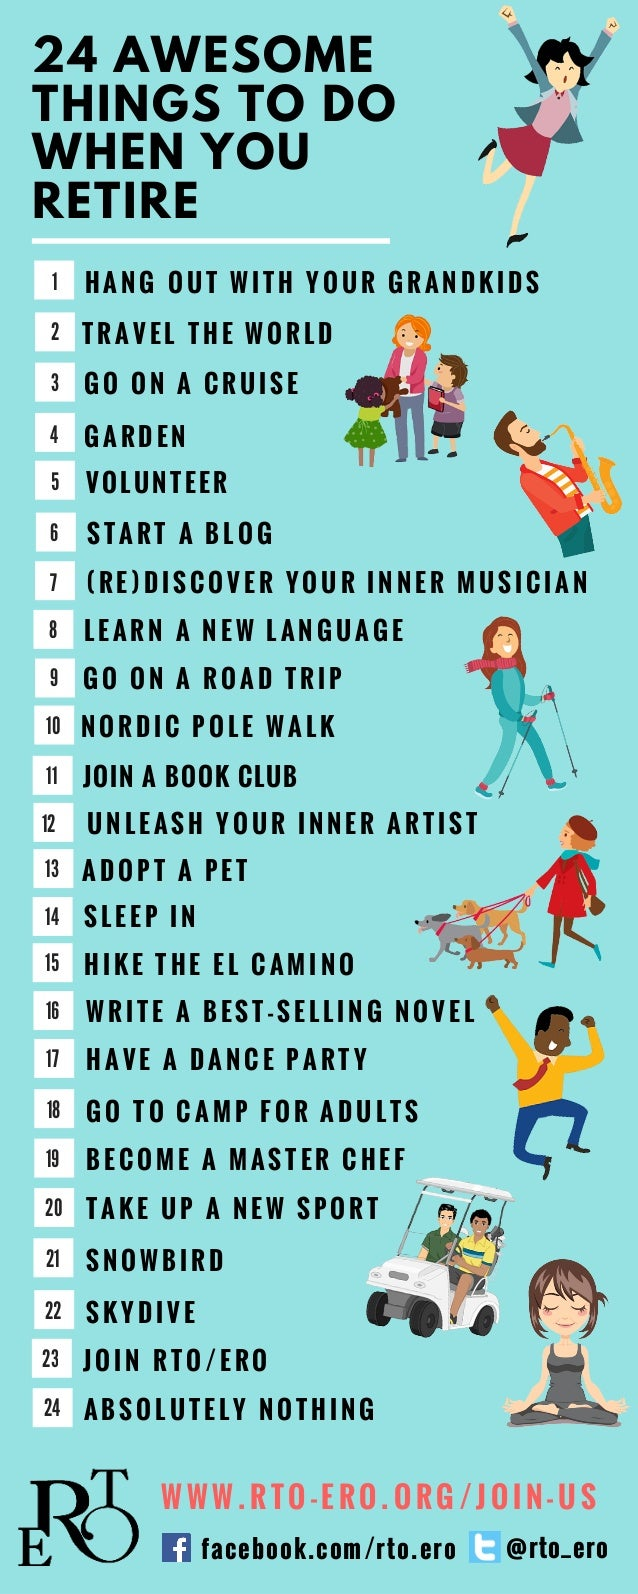 24 Awesome Things To Do When You Retire